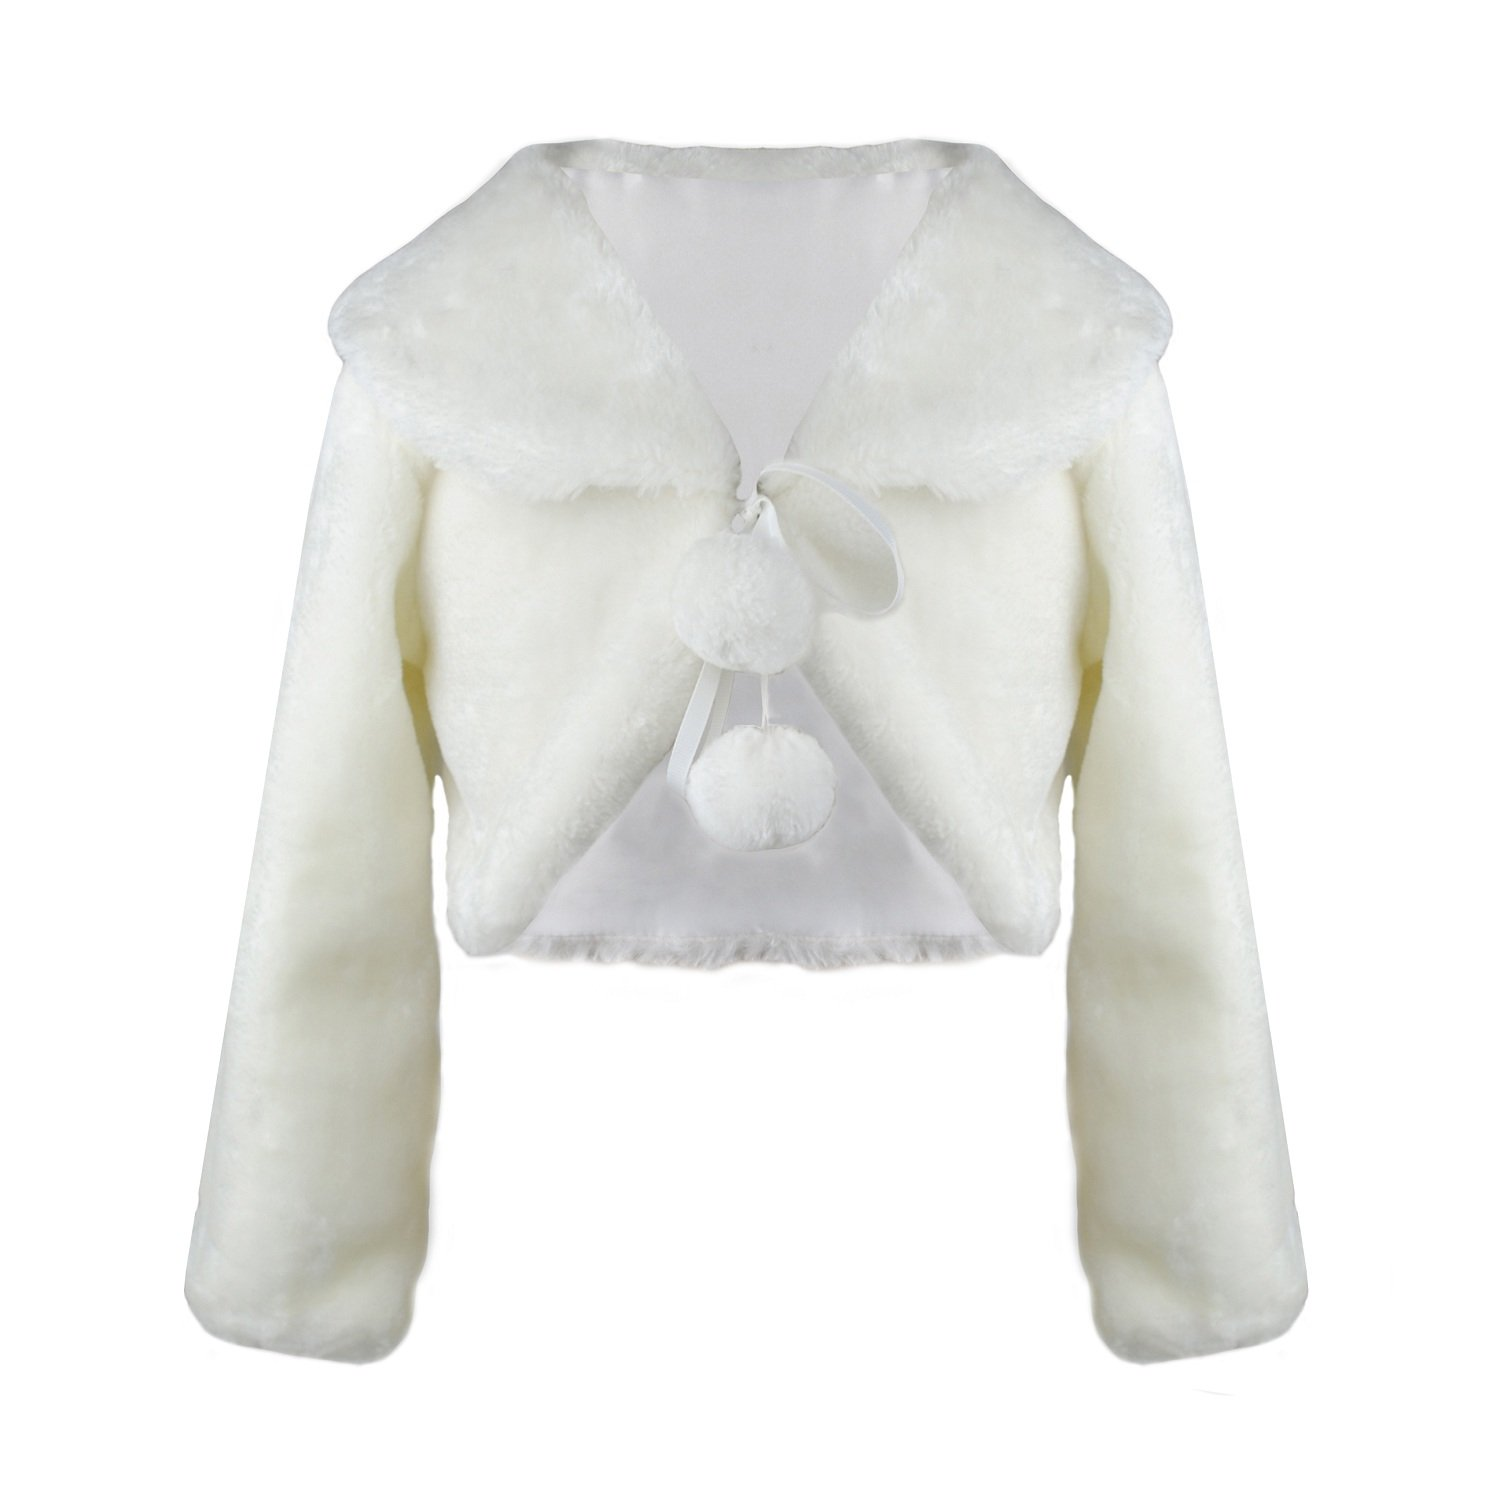 Abbyabbie.Li Faux Fur Girl Shrugs Long Sleeve Winter Warmer Jacket for Kids Bridesmaid Ivory Tippet for Party Wedding